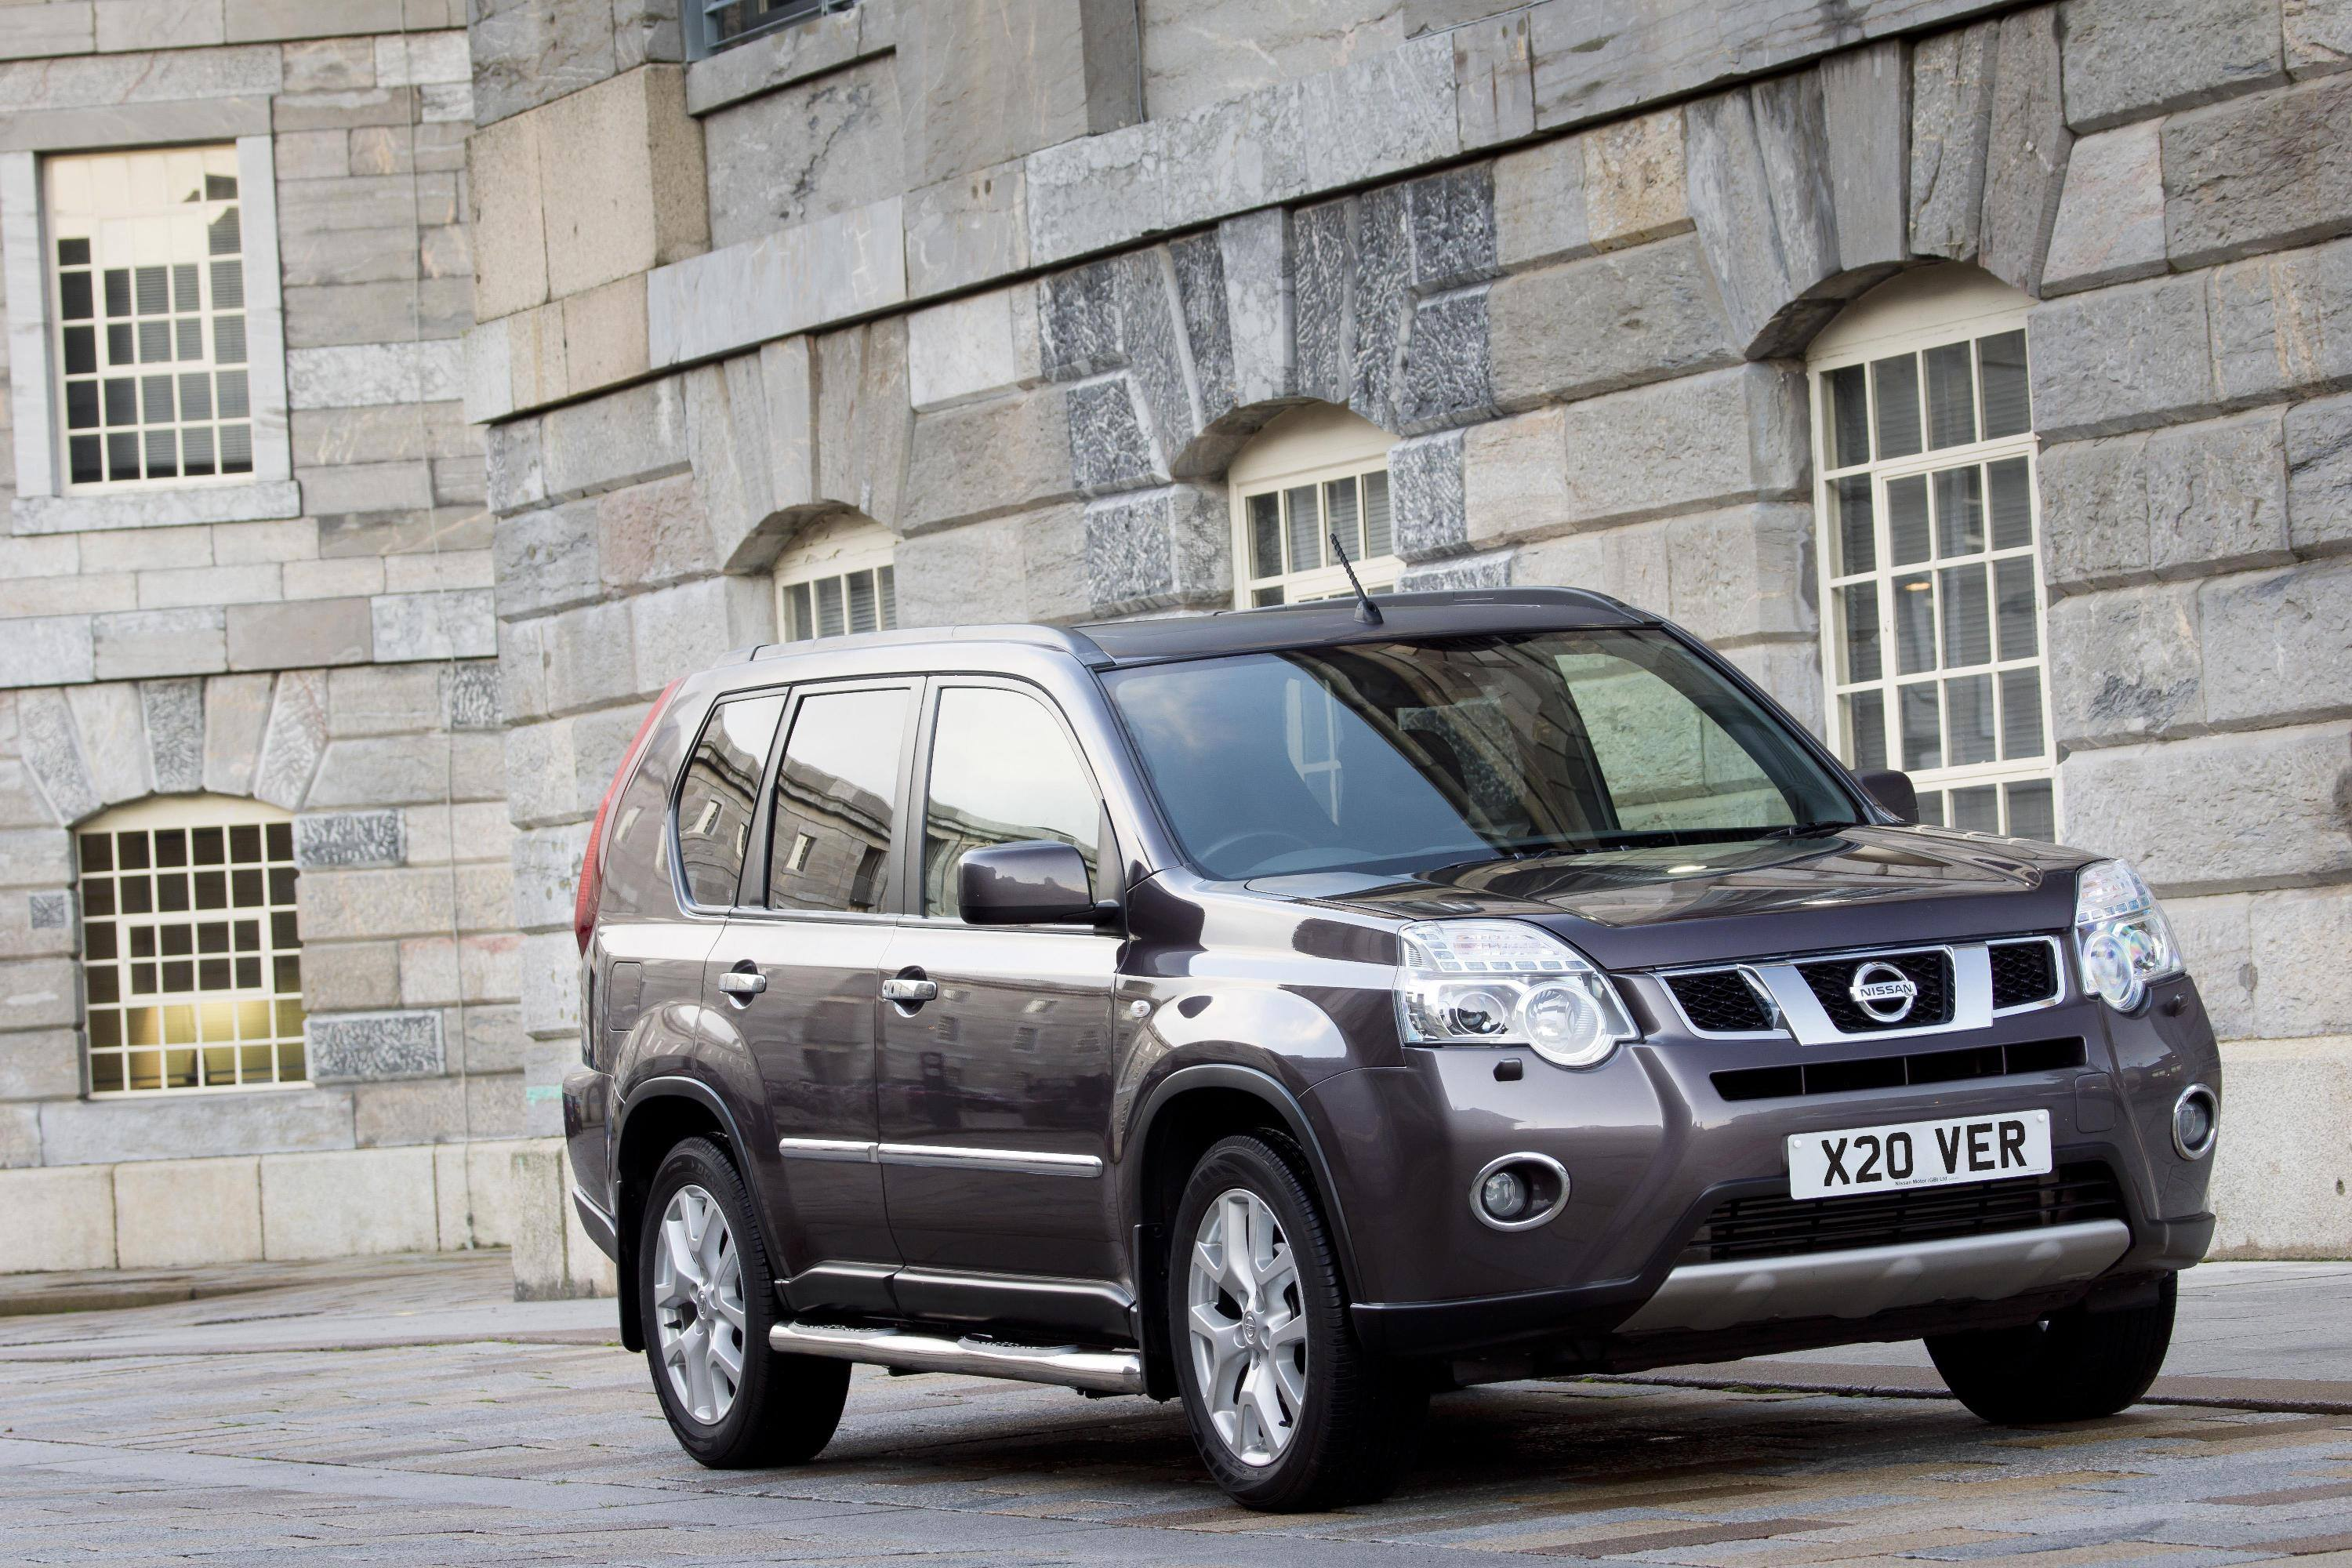 Grey Nissan X-trail parked outside castle